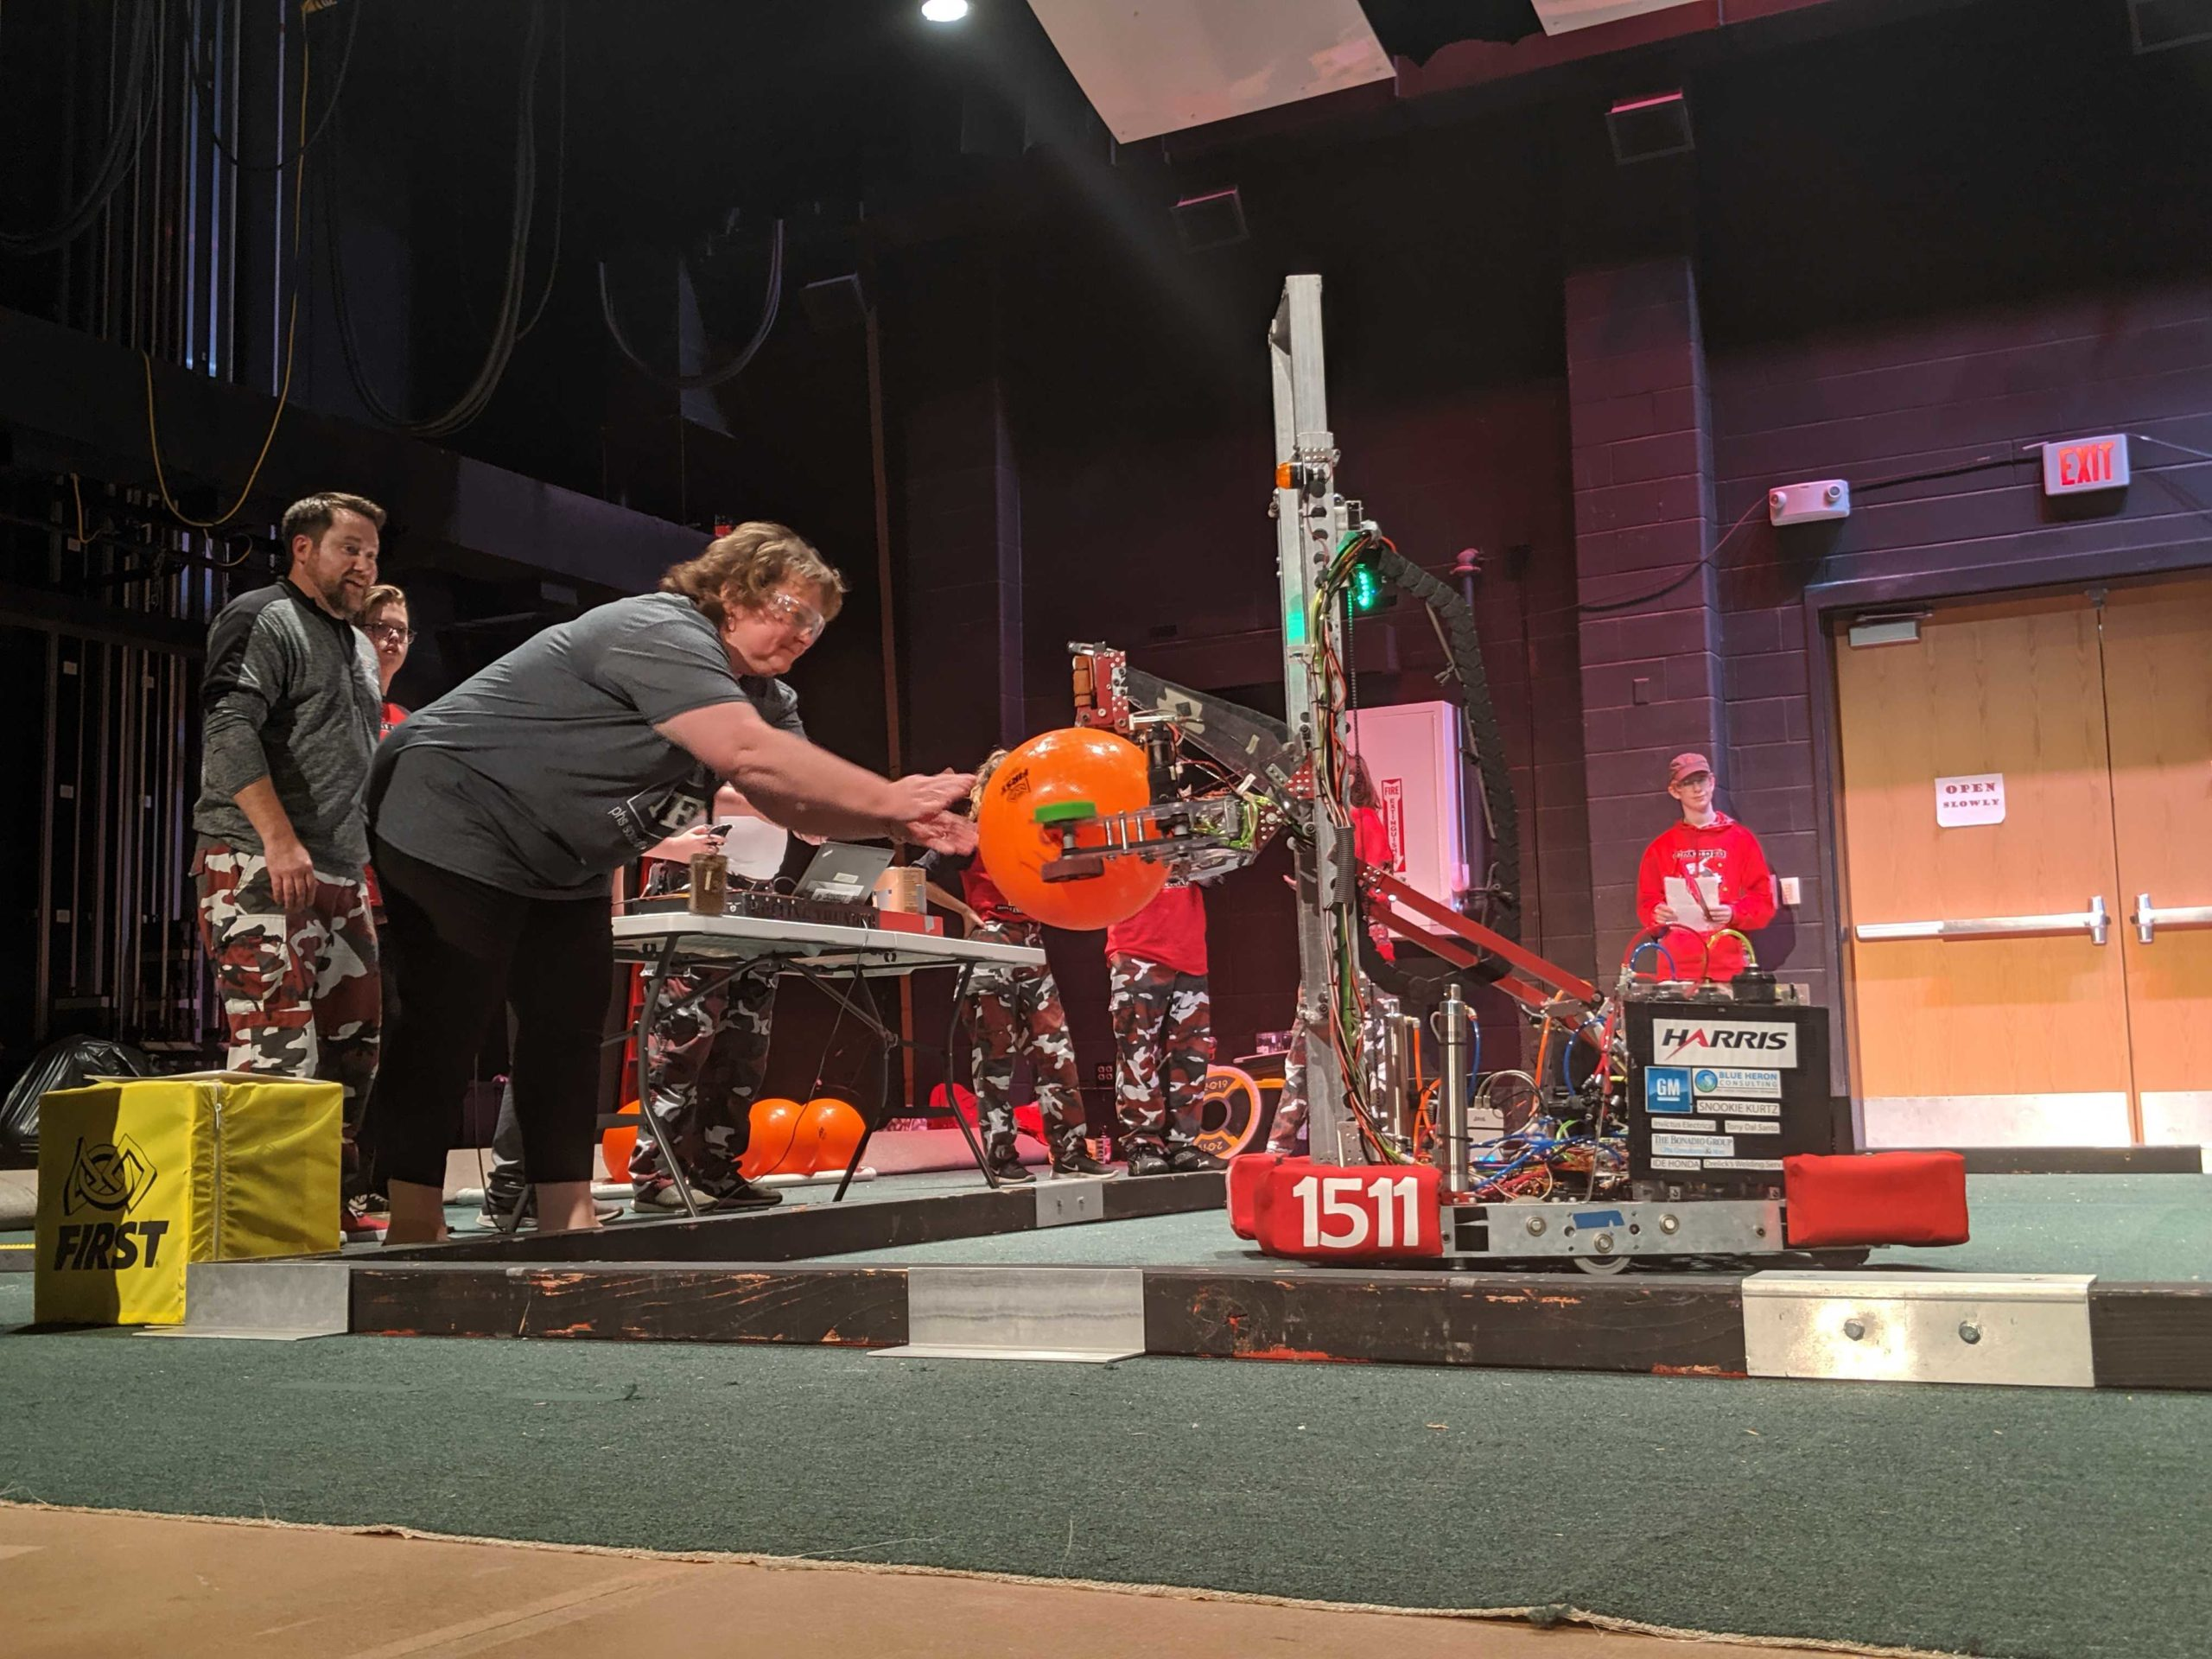 School administrator loading an orange ball into a robot at Cage Match Event